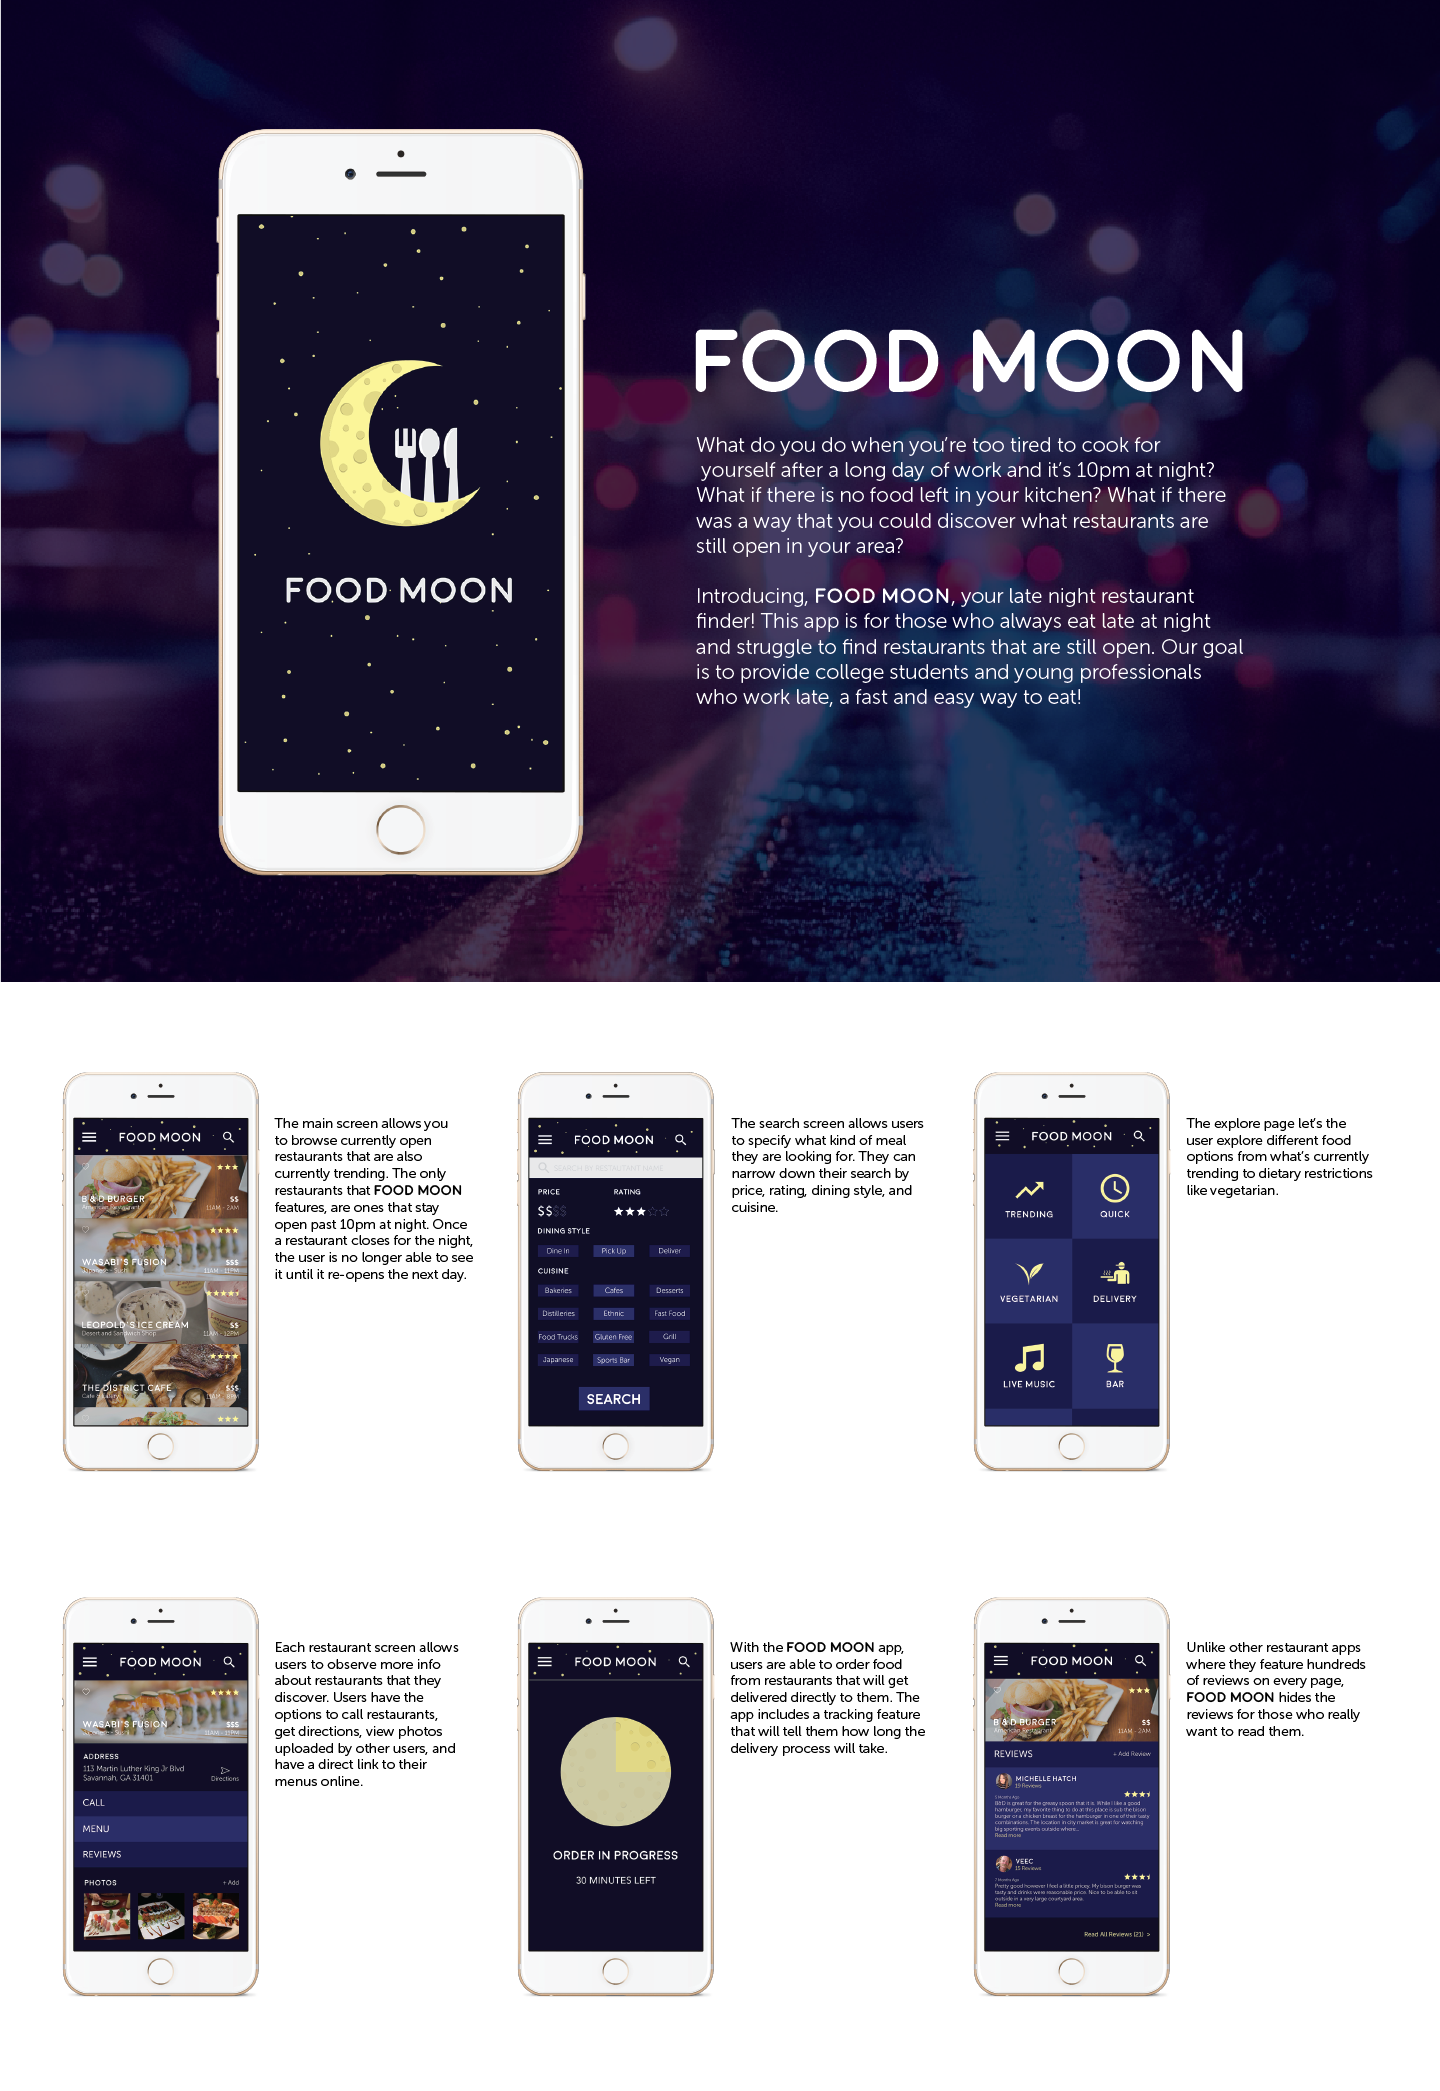 Food Moon app designed by Taylor Carney, Dado Evia, Michael Kerniss, and Karlie Chung